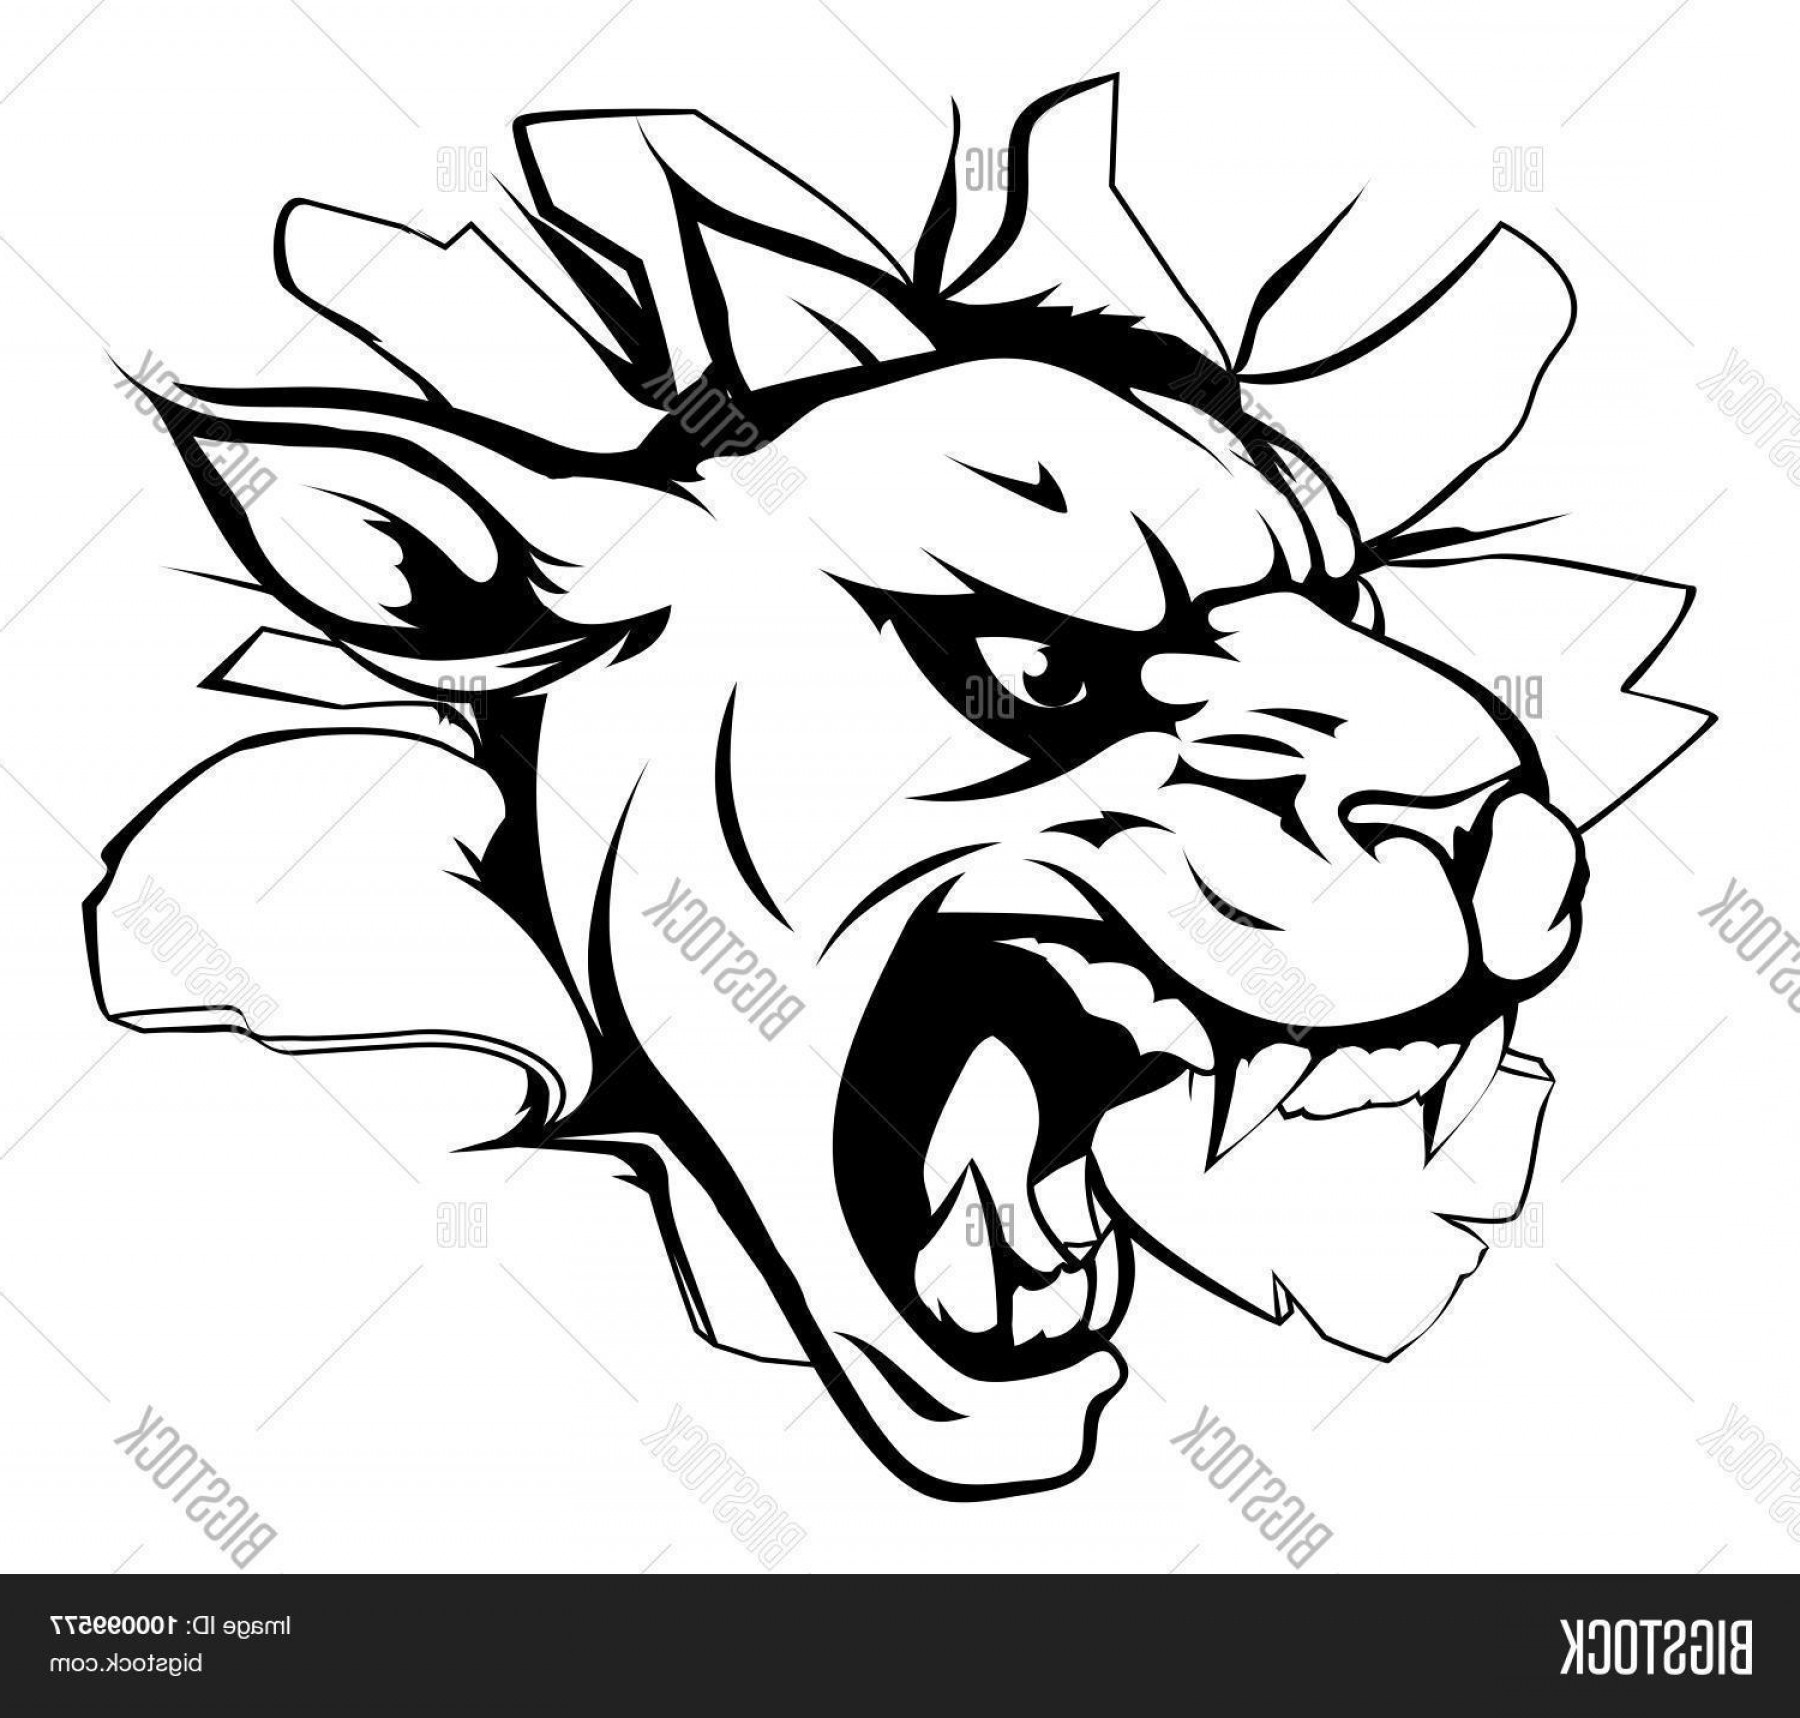 Panther Mascot Vector Sports: Stock Vector Panther Mascot Breaking Through Wall